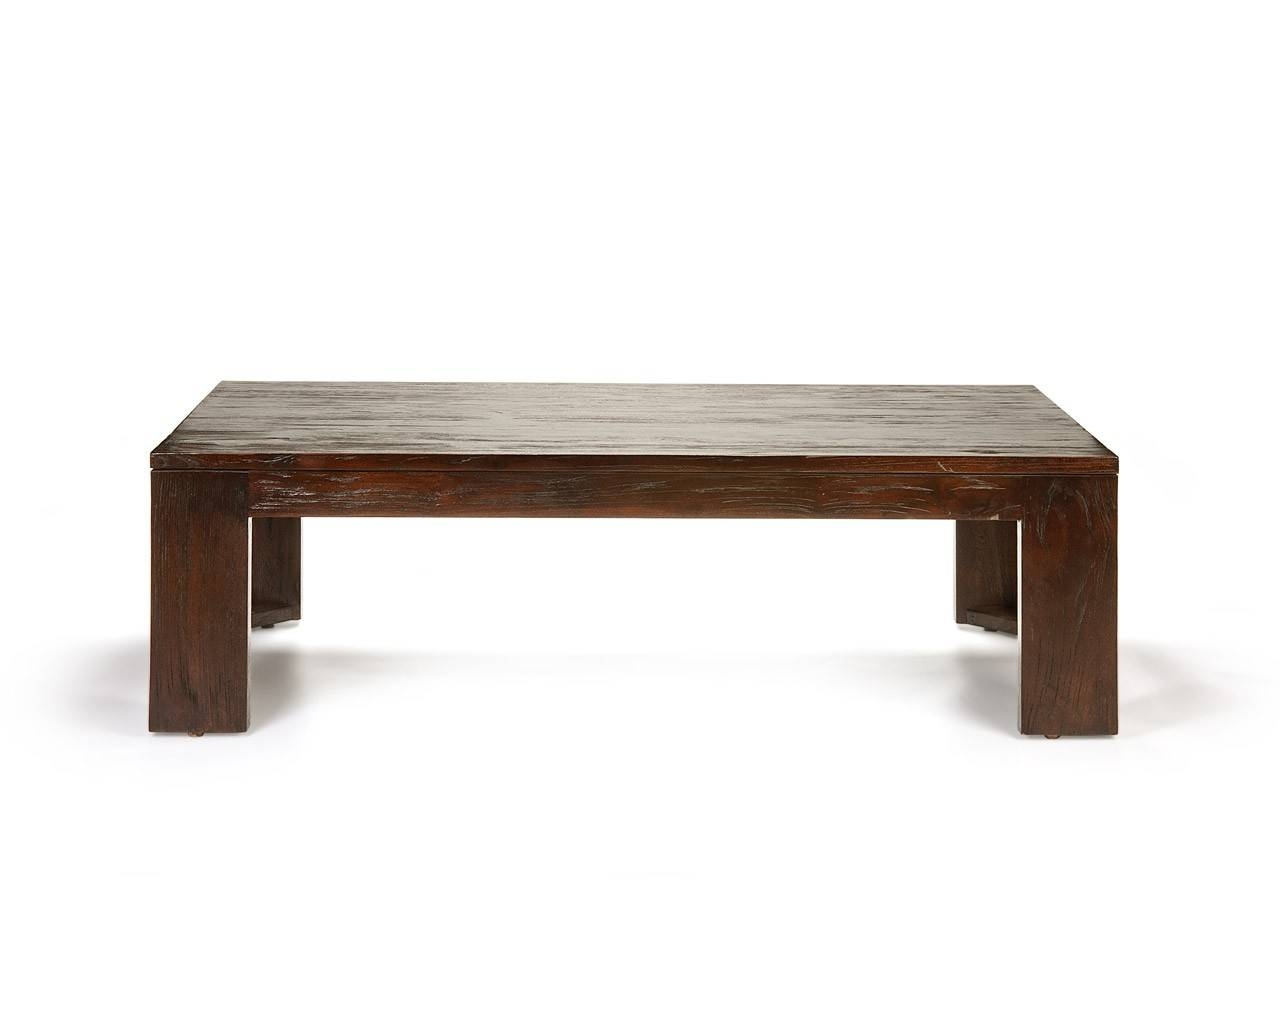 Square Dark Wood Coffee Table / Coffee Tables / Thippo within Square Dark Wood Coffee Tables (Image 26 of 30)